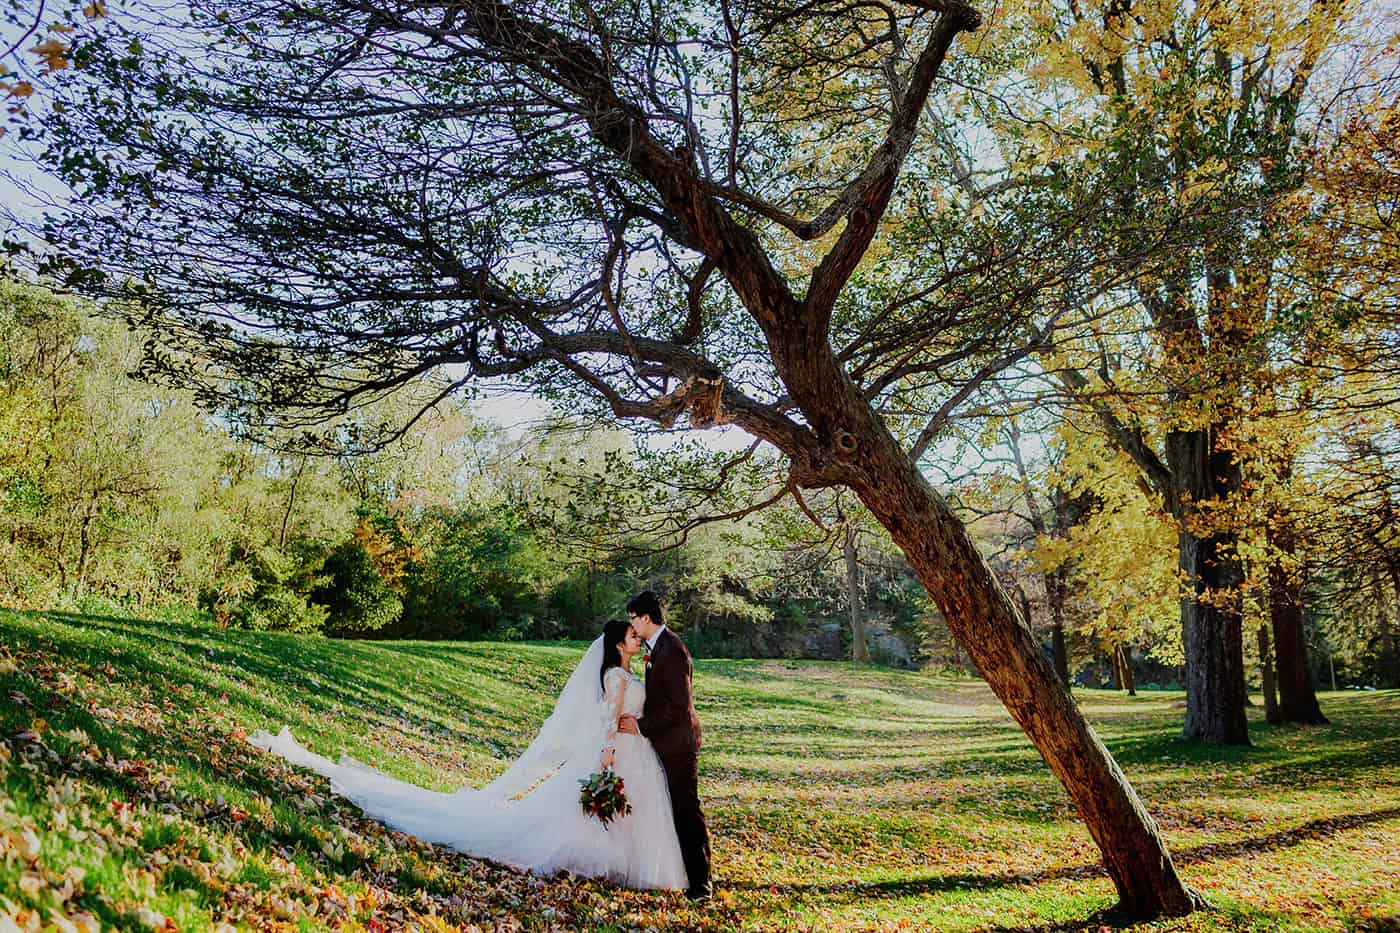 Portrait of a bride & groom under a crooked tree